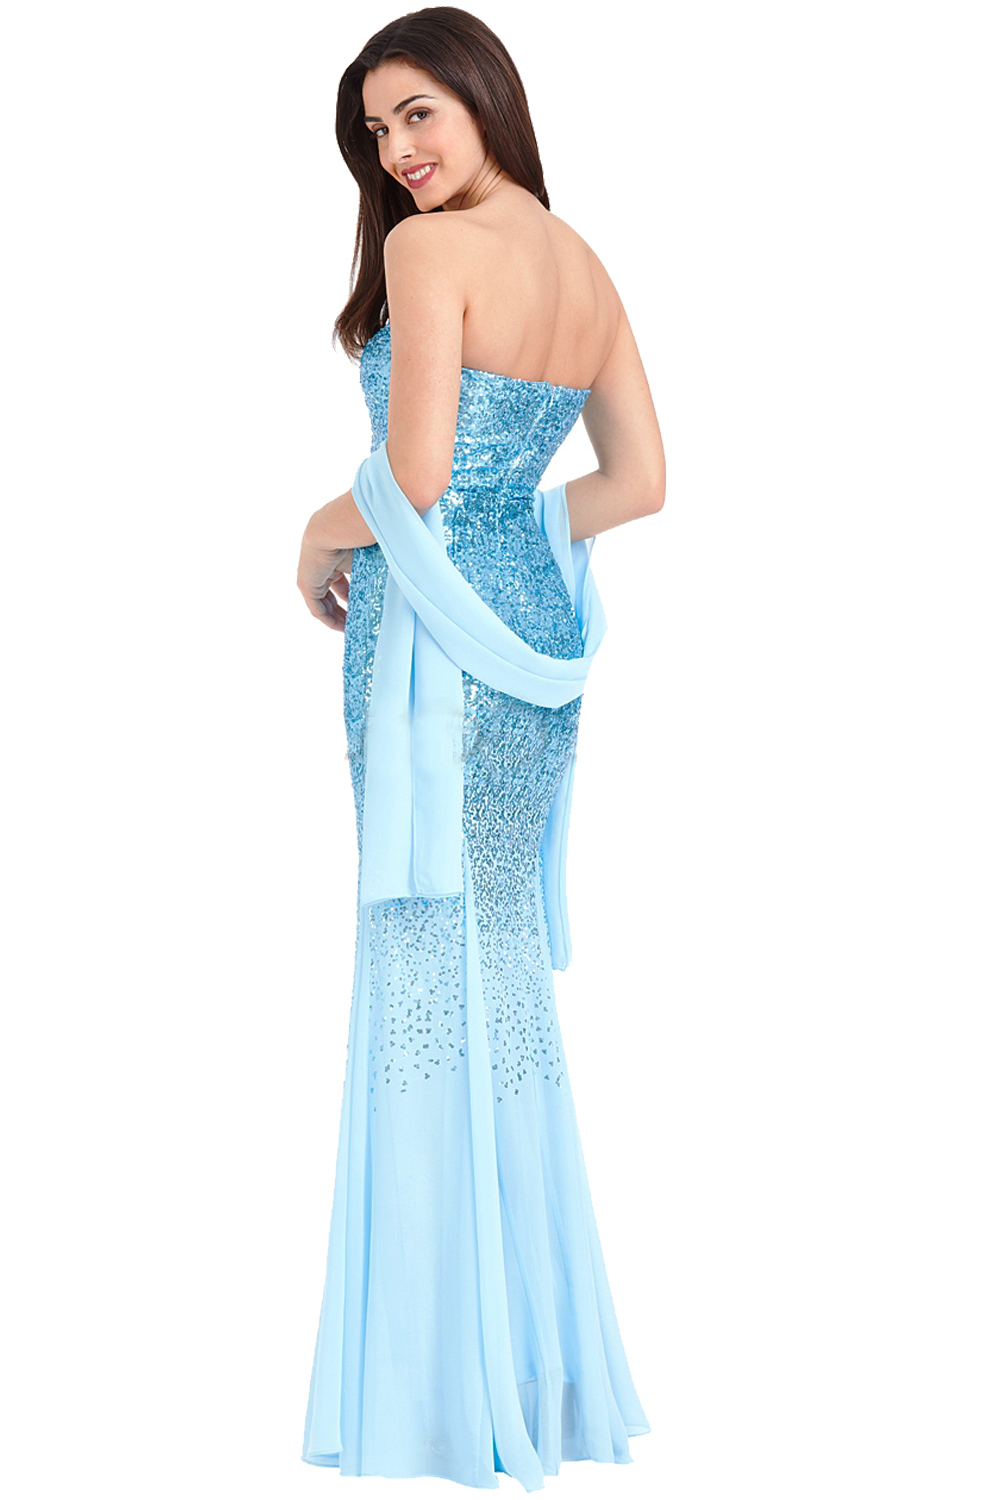 Azalea Blue Maxi Sequin Prom Dress Free Amp Fast Uk P Amp P